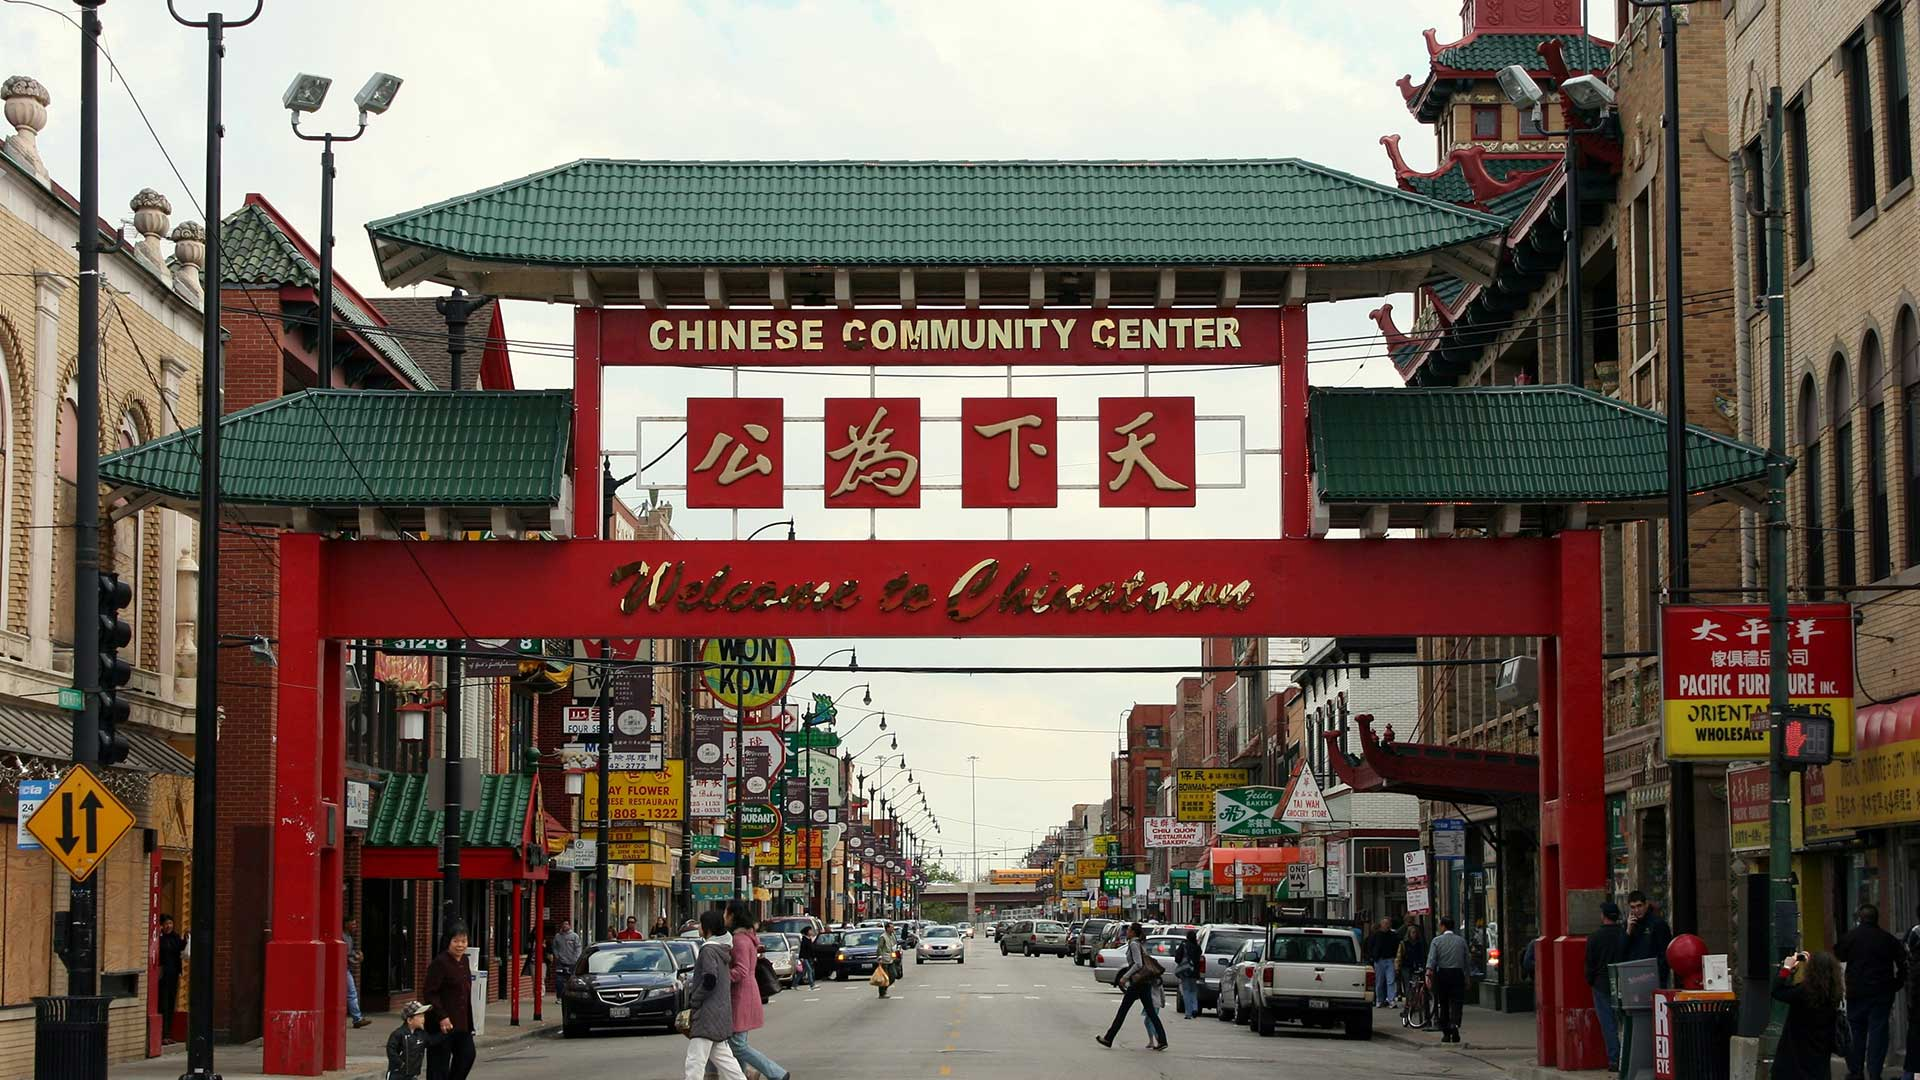 The entrance to Chinatown in Chicago